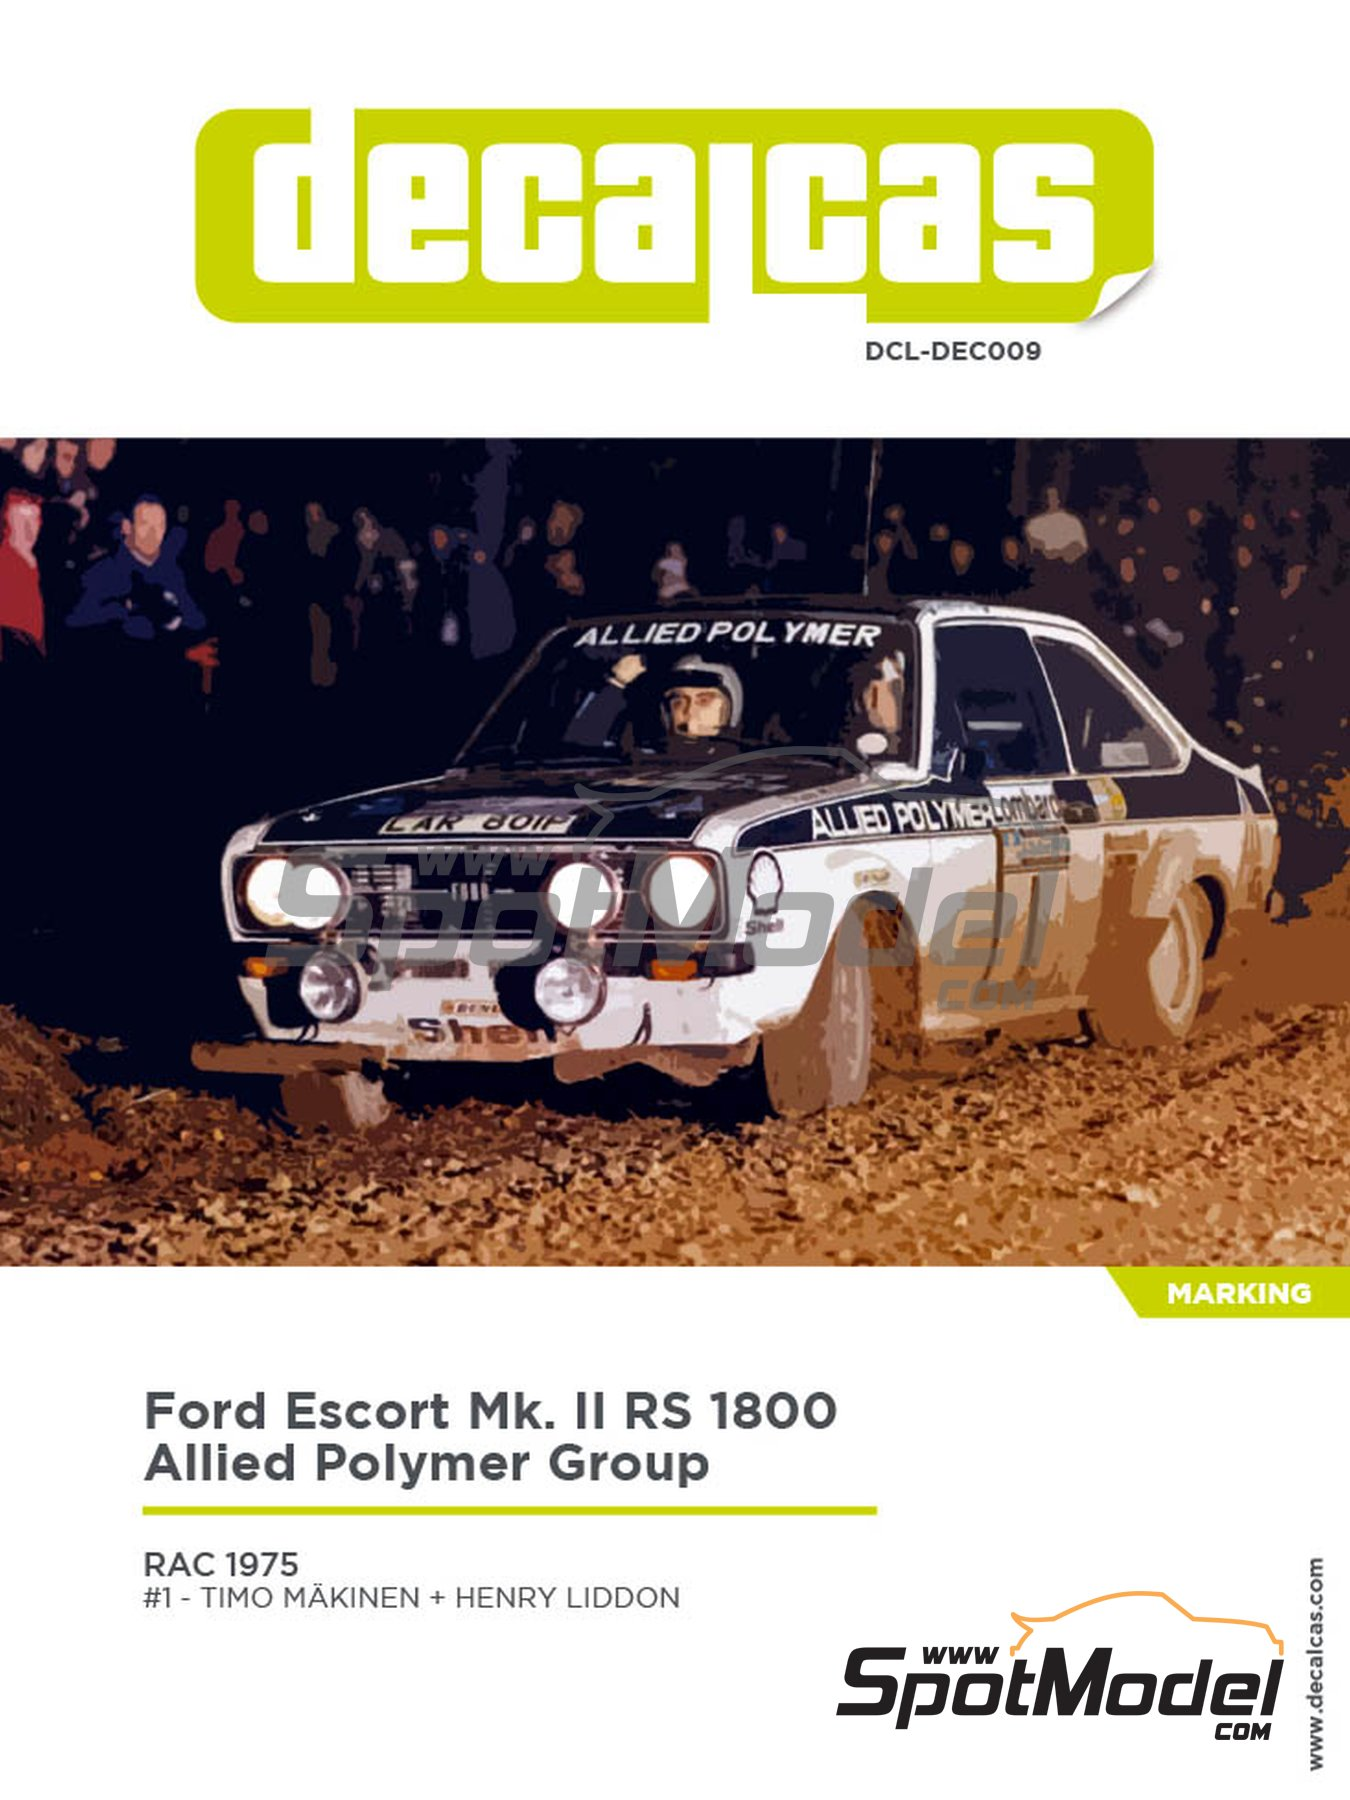 Ford Escort Mk. II RS 1800 Allied Polymer Group - RAC Rally 1975 | Marking / livery in 1/24 scale manufactured by Decalcas (ref. DCL-DEC009) image